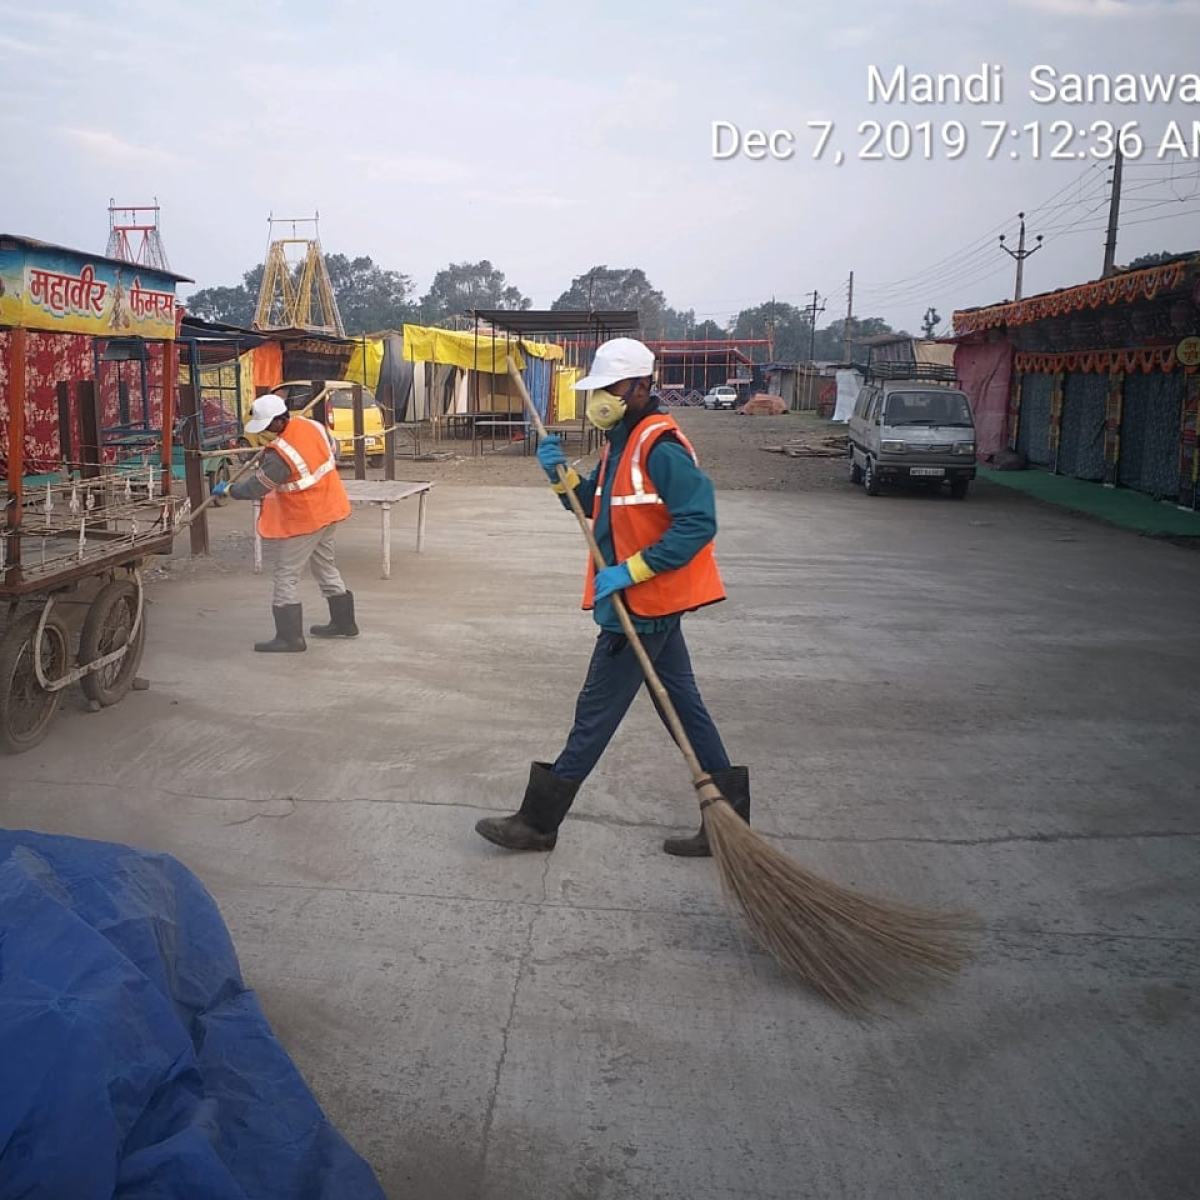 Swachh Survekshan 2020: Towns in Malwa Nimar continue to improve performance